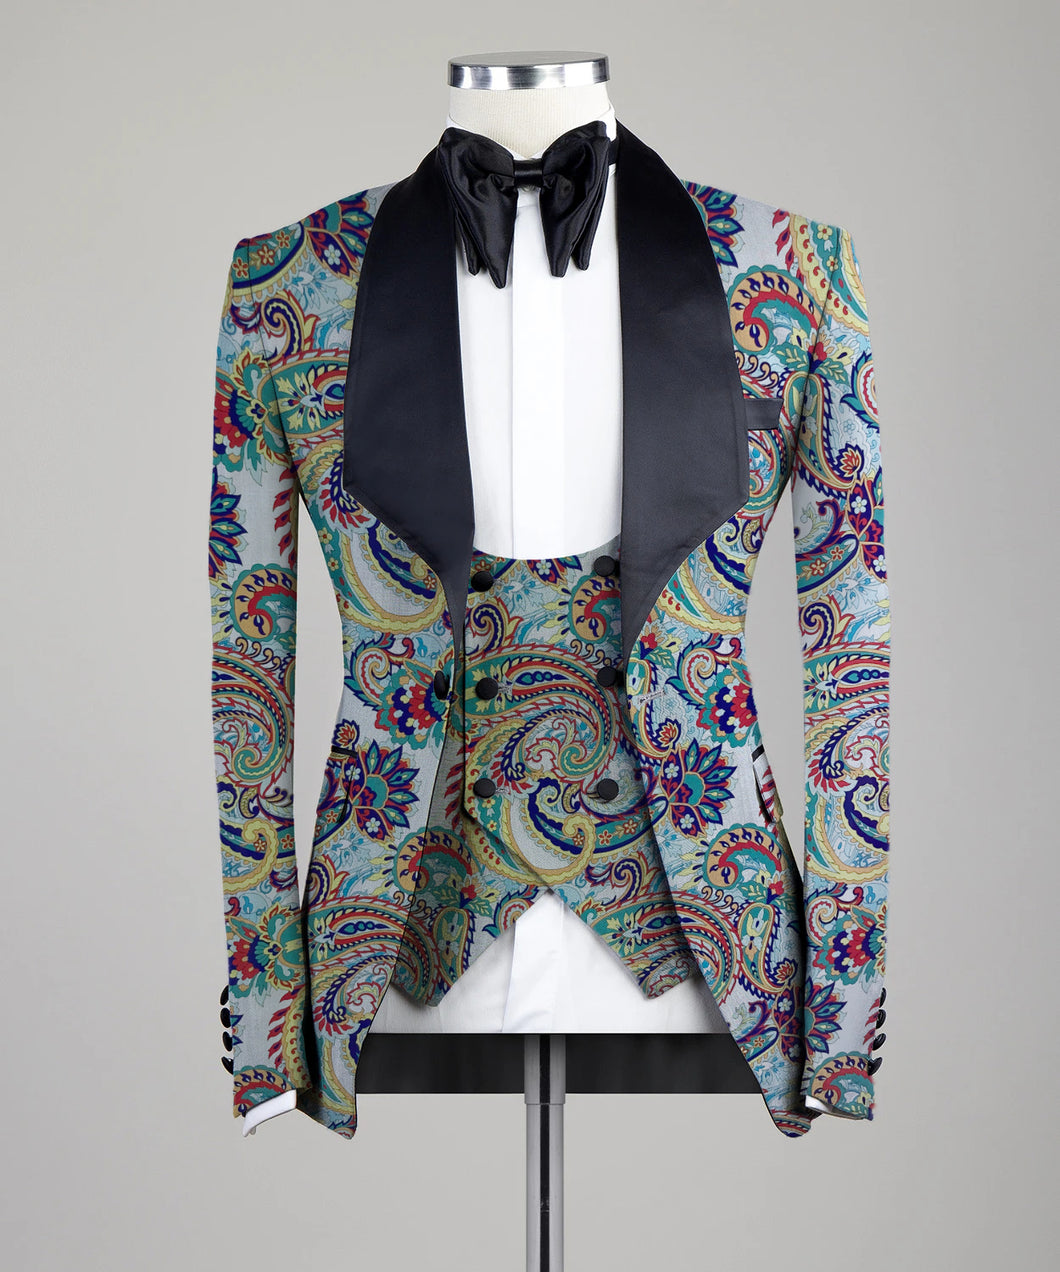 Digital Printed Paisley Colorful Three Pieces Tuxedo